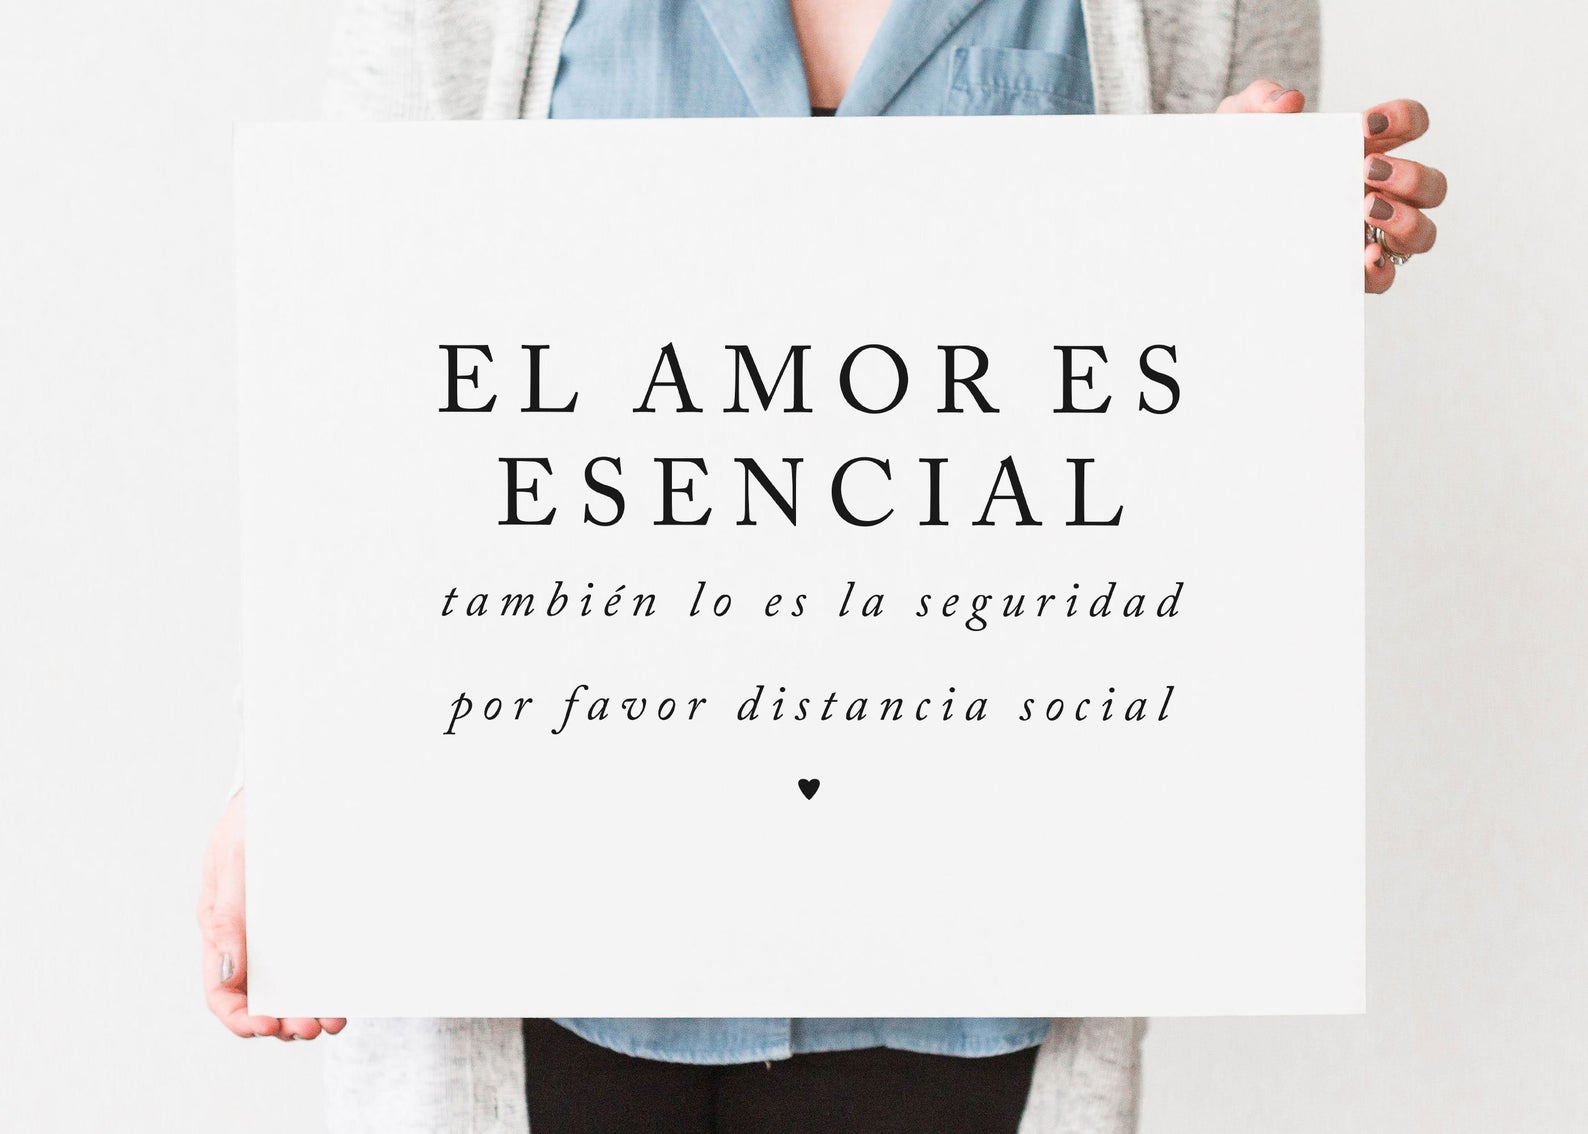 spanish-social-distance-wedding-sign